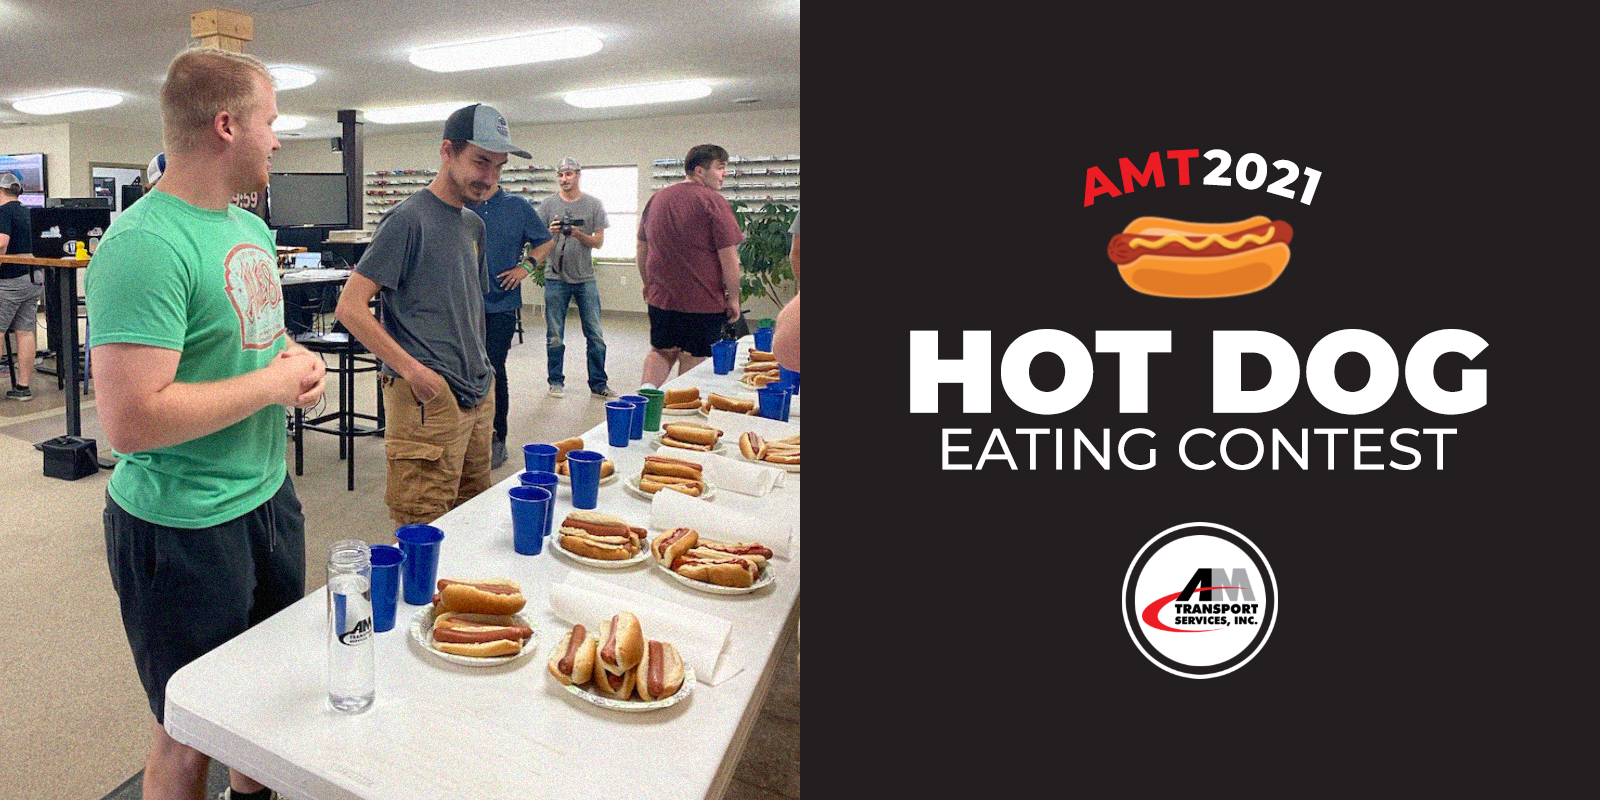 AMT's Hot Dog Eating Contest